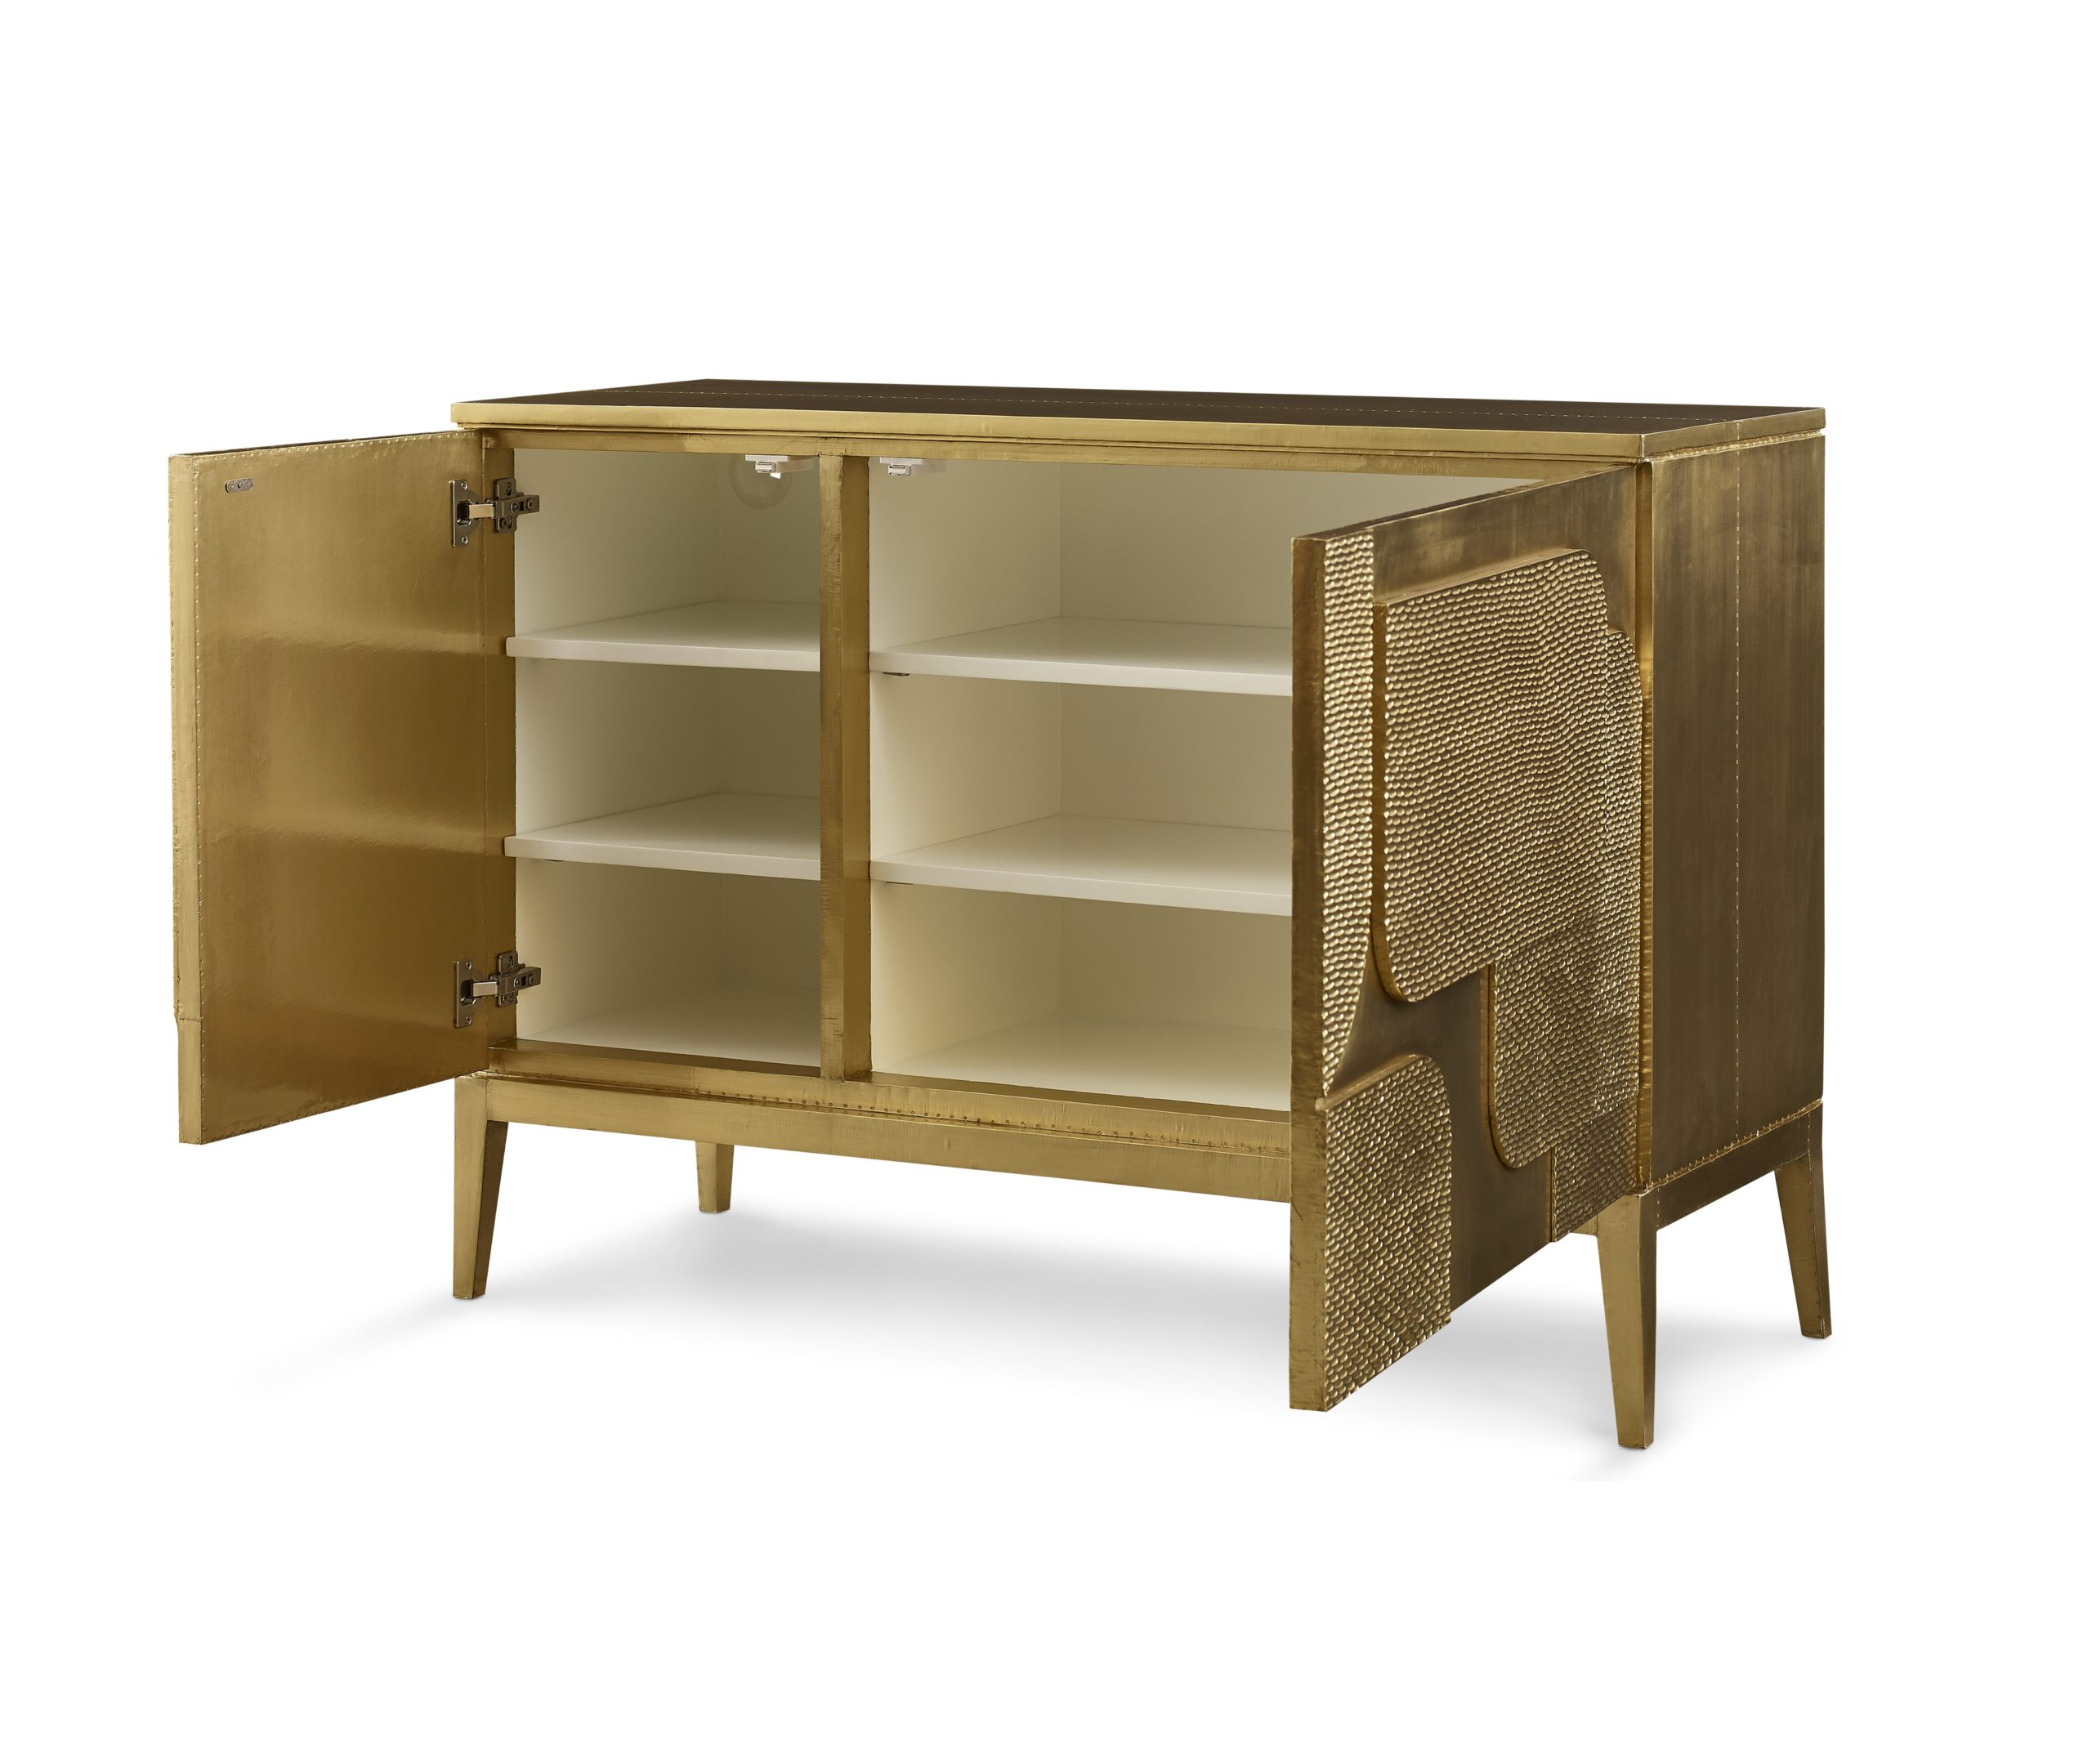 Baker_products_WNWN_milanese_chest_BAA3073_OPEN-scaled-2